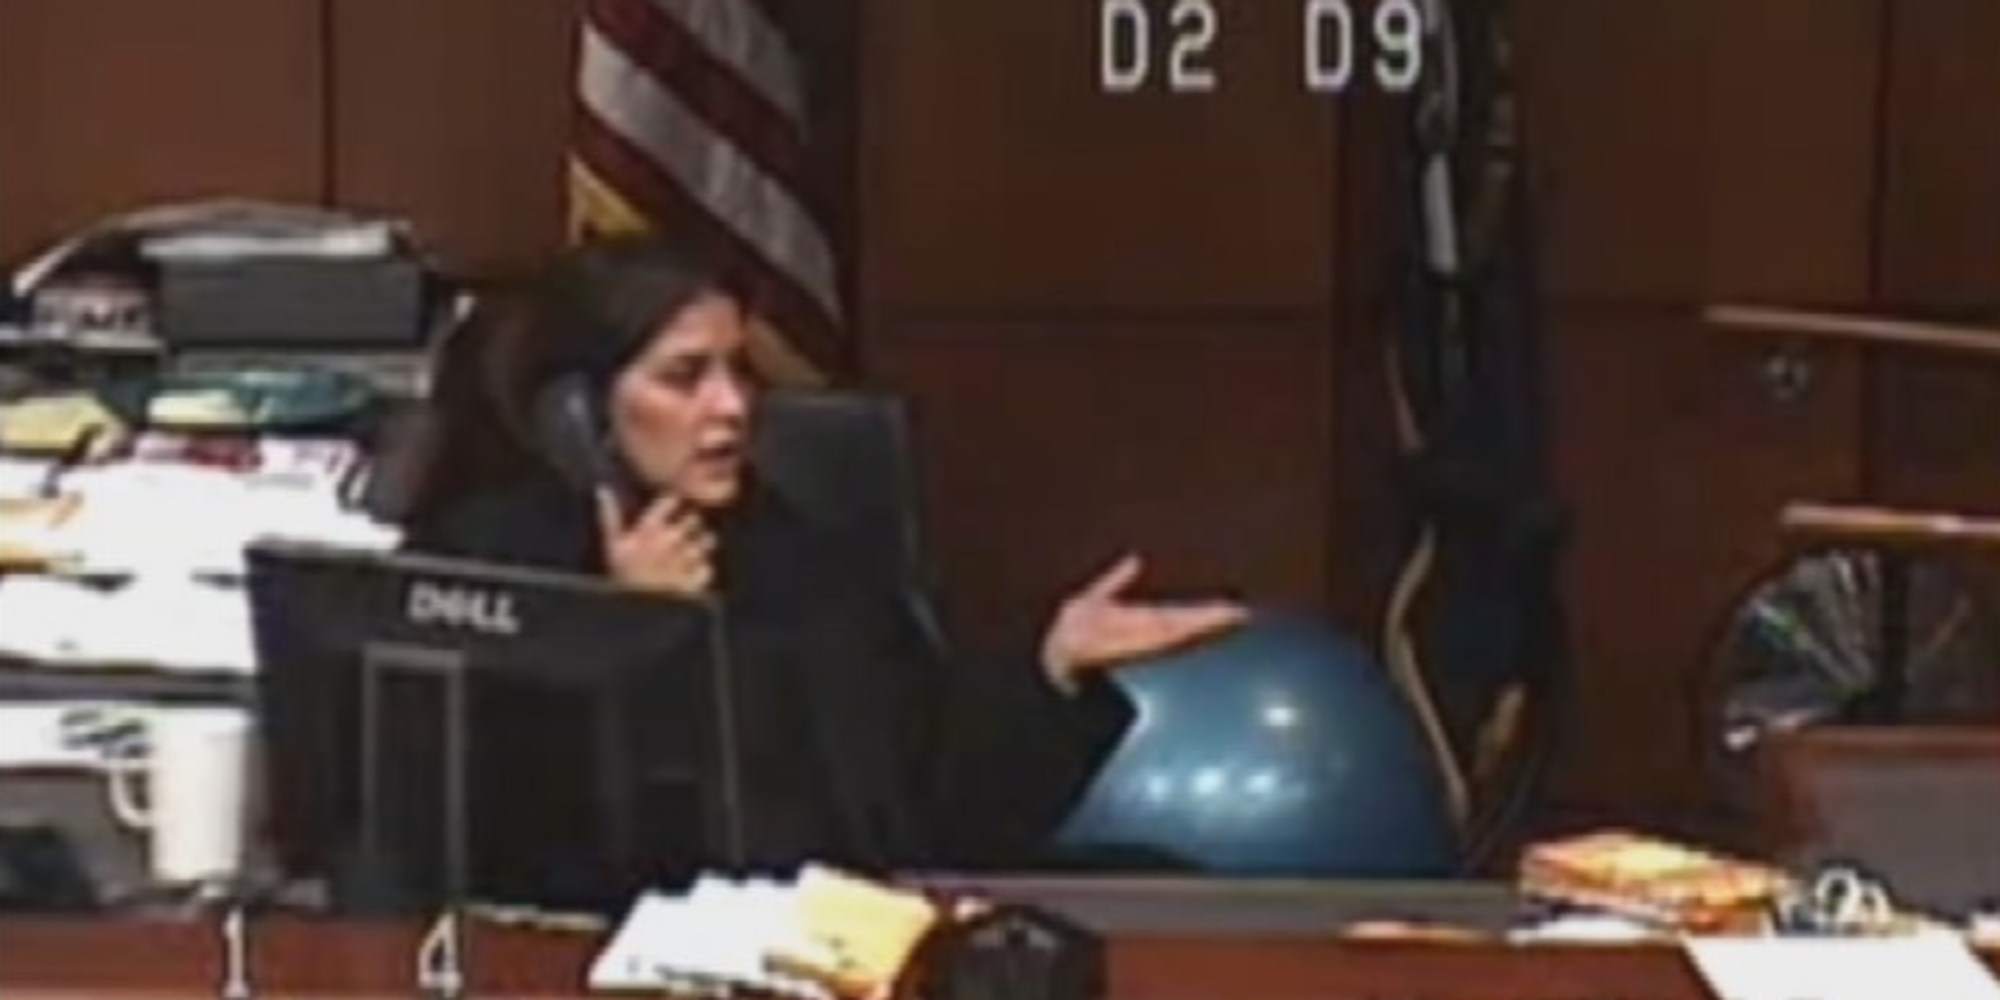 Kentucky Judge Outraged After Woman Was Brought to Court Without Pants